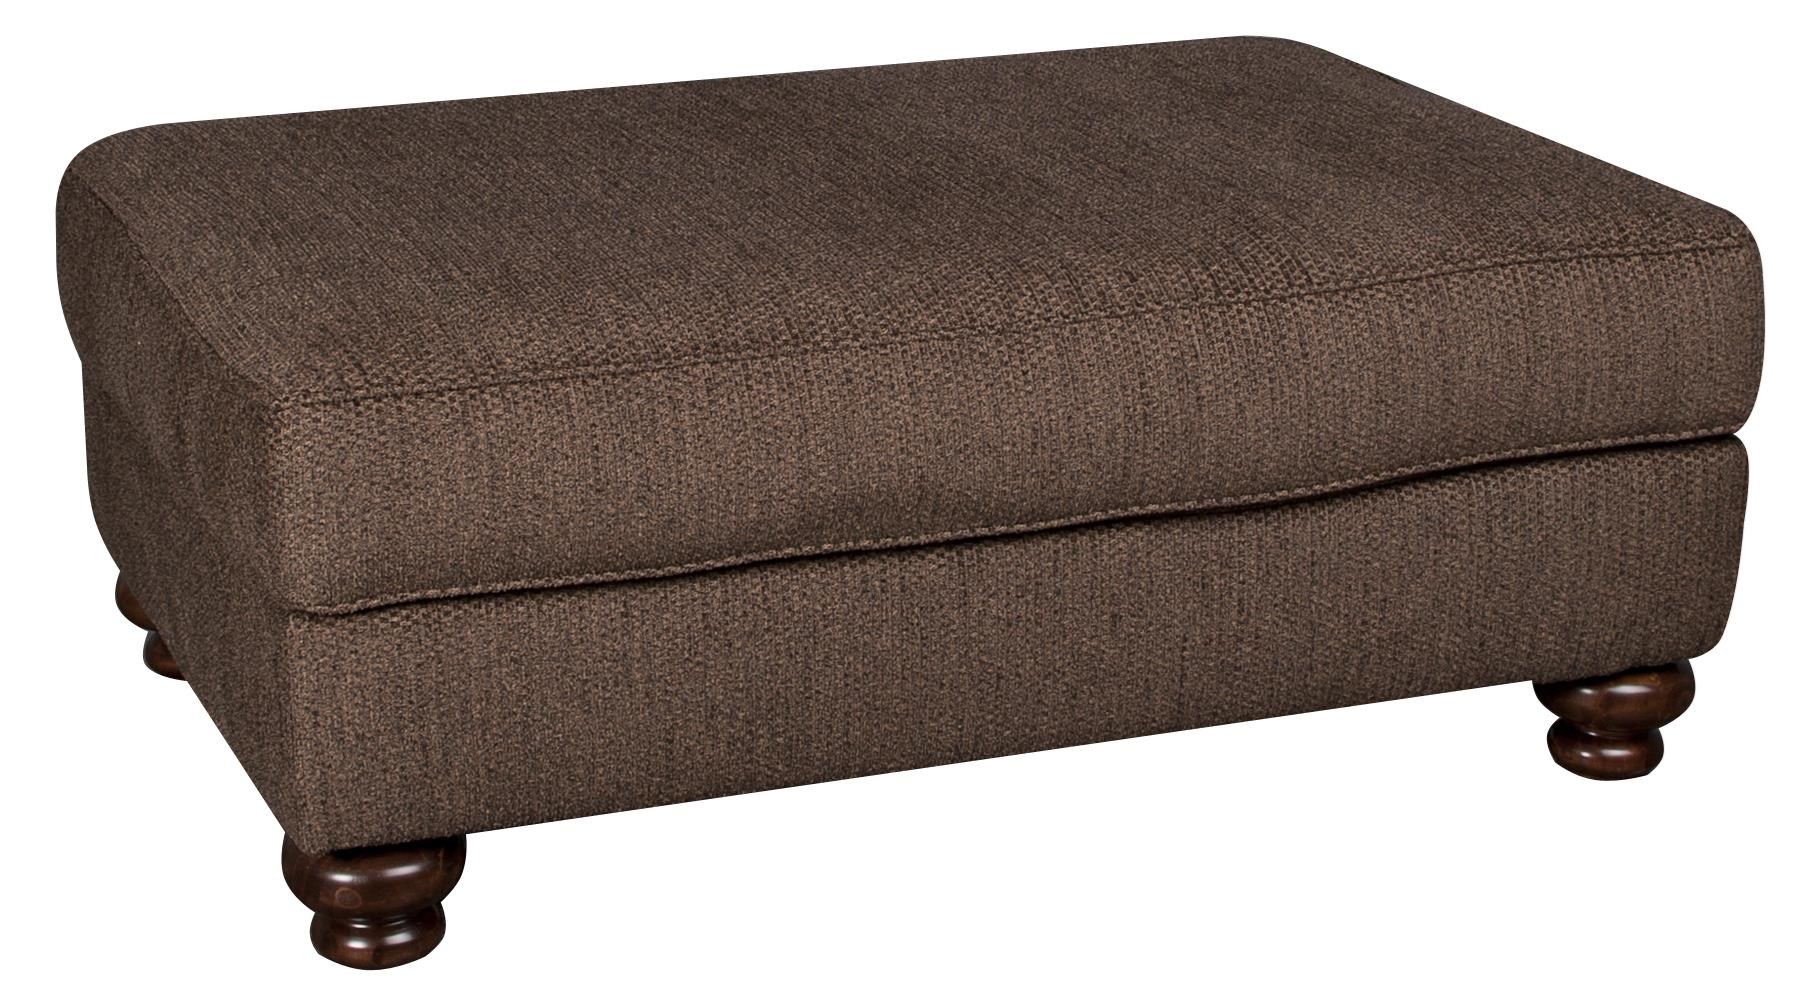 Kendall Kendall Ottoman by Klaussner at Morris Home